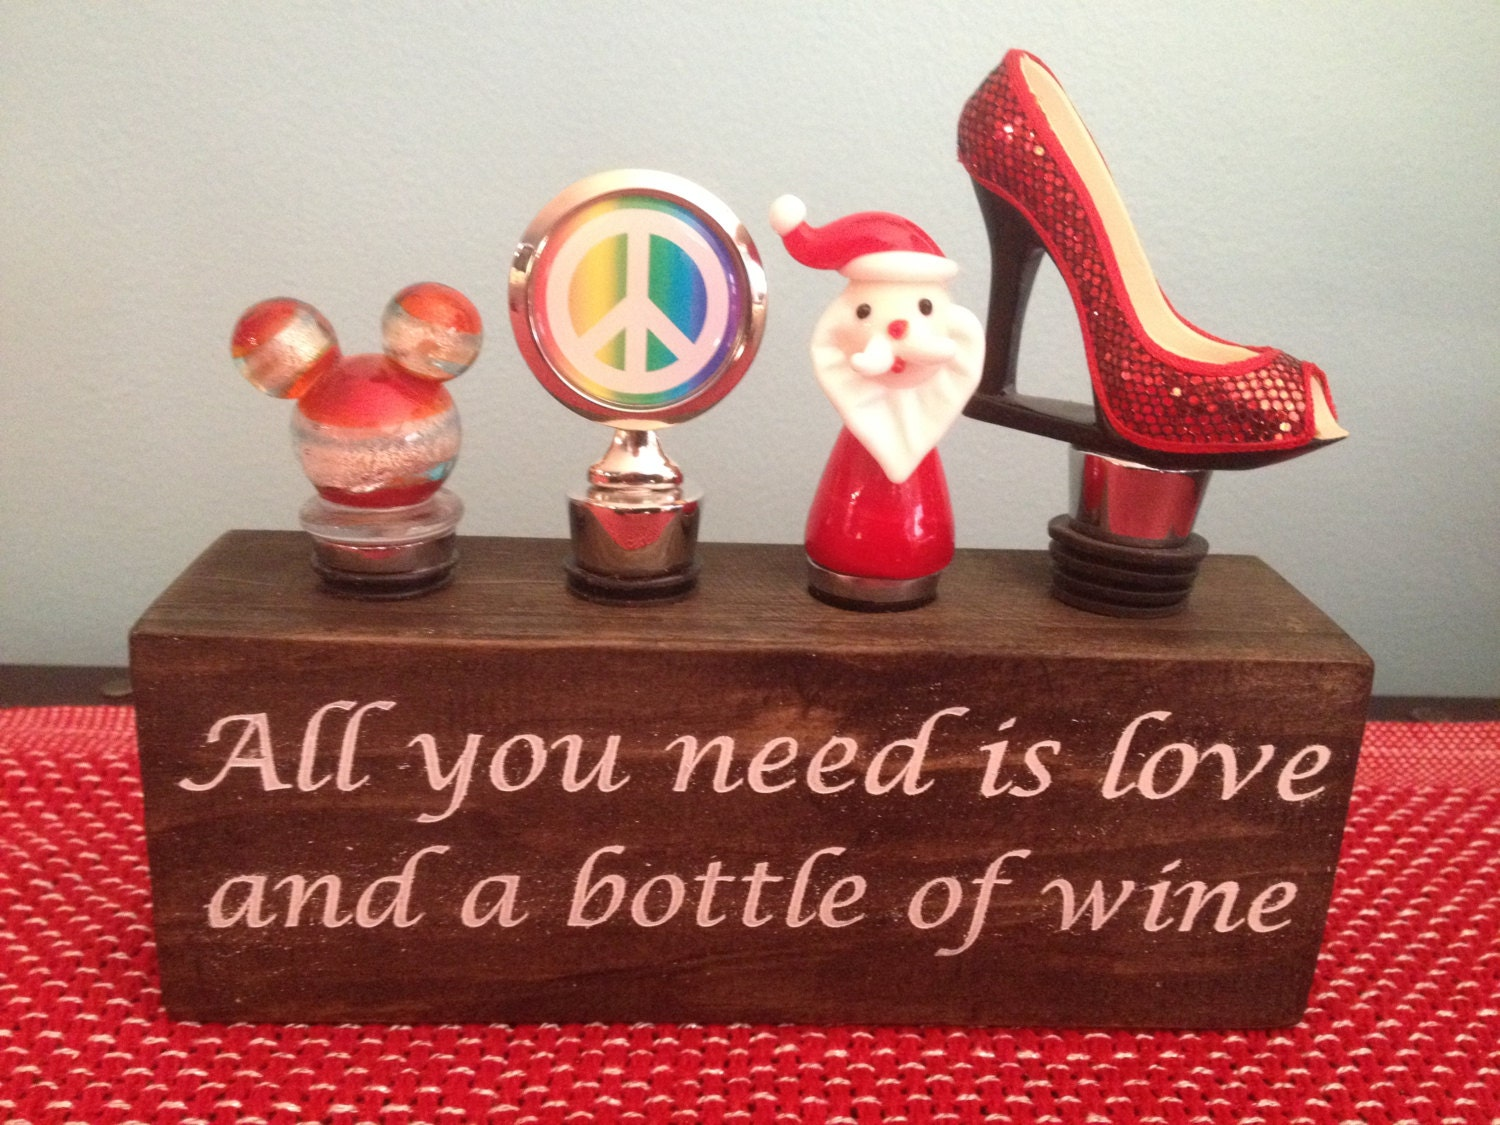 Hand Made Wooden Wine Stopper Holder Display Box